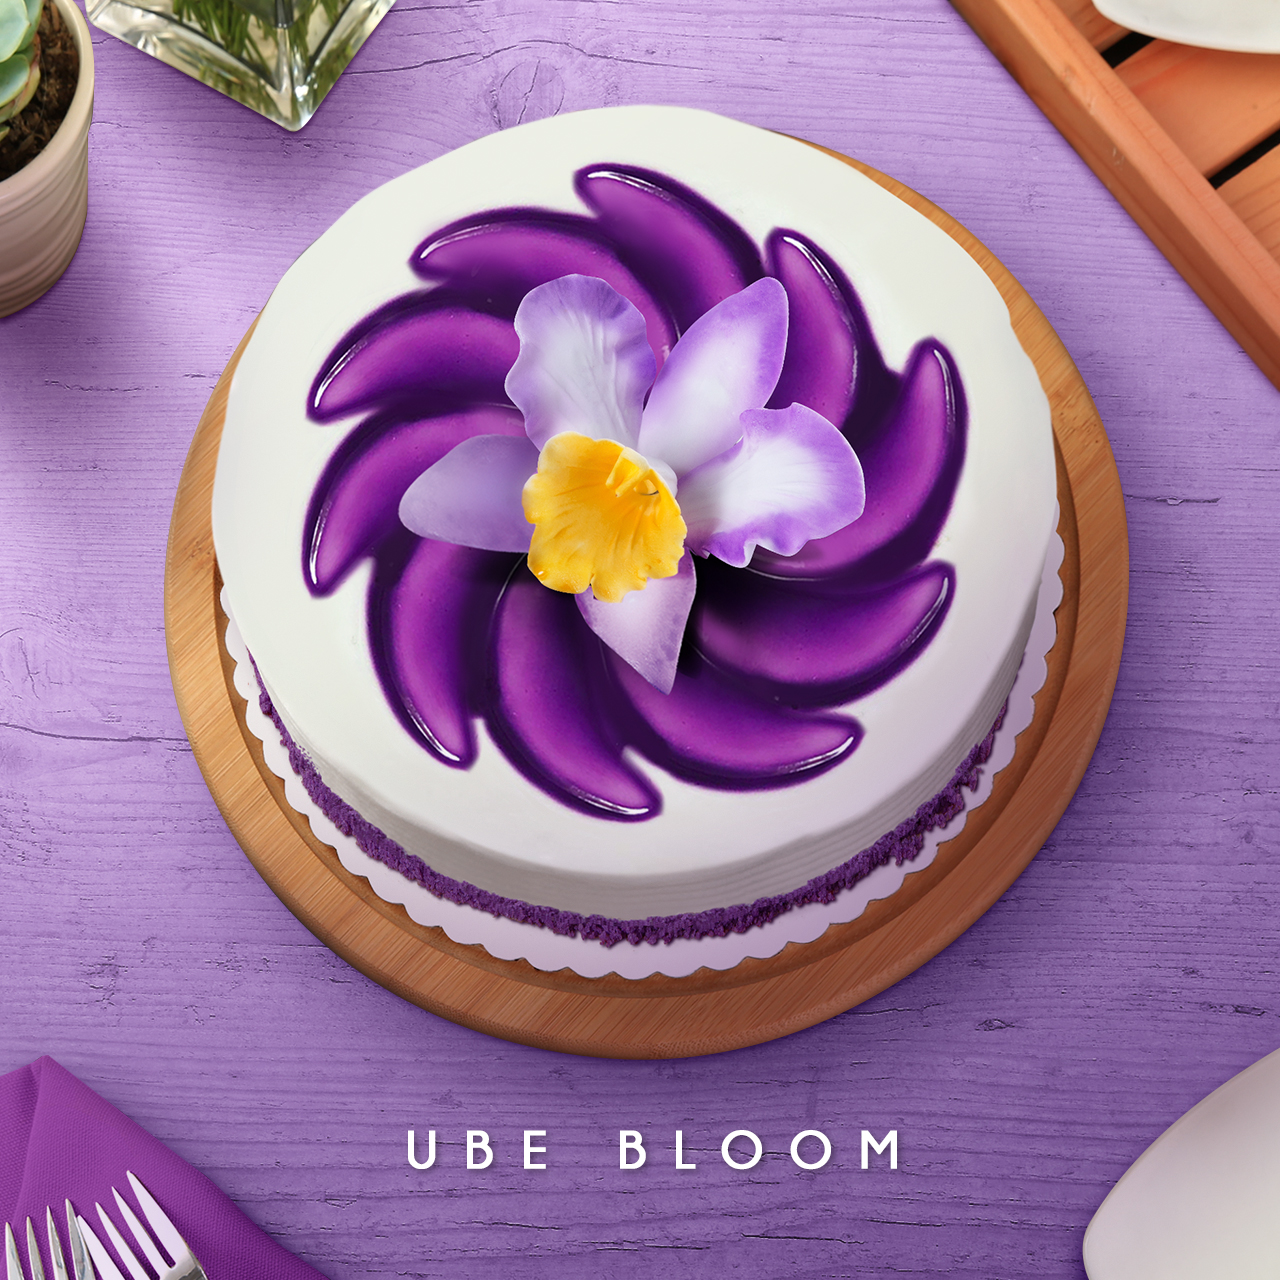 8327c0b6dbab Cakes of Art The Ube Bloom is a feast for the eyes and the taste buds. The  sumptuous cake is covered with creamy, snow-white frosting and embellished  with ...